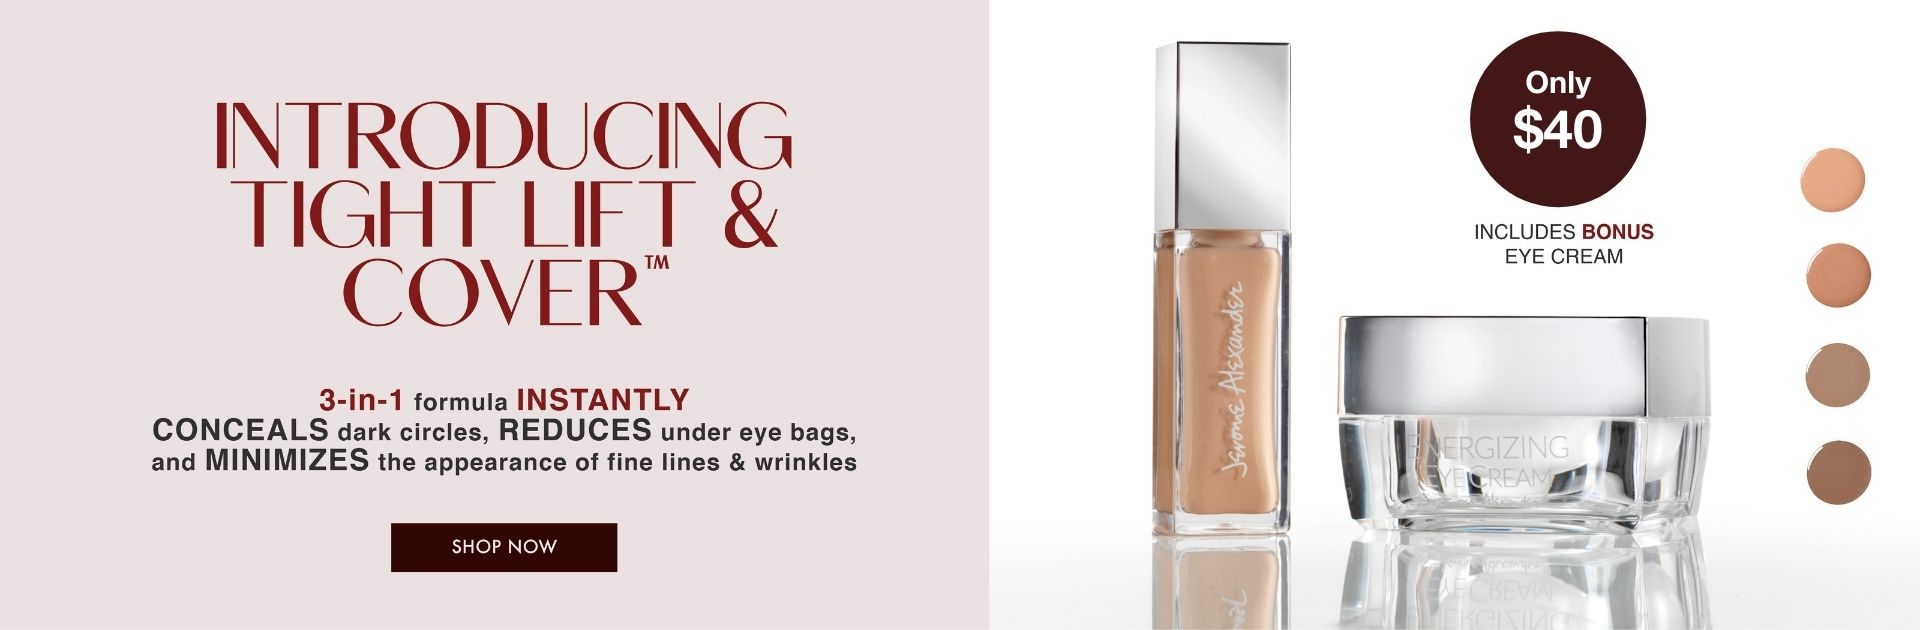 Tight Lift and Cover TLC Bonus Energizing Eye Cream Undereye Concealer and Tightener